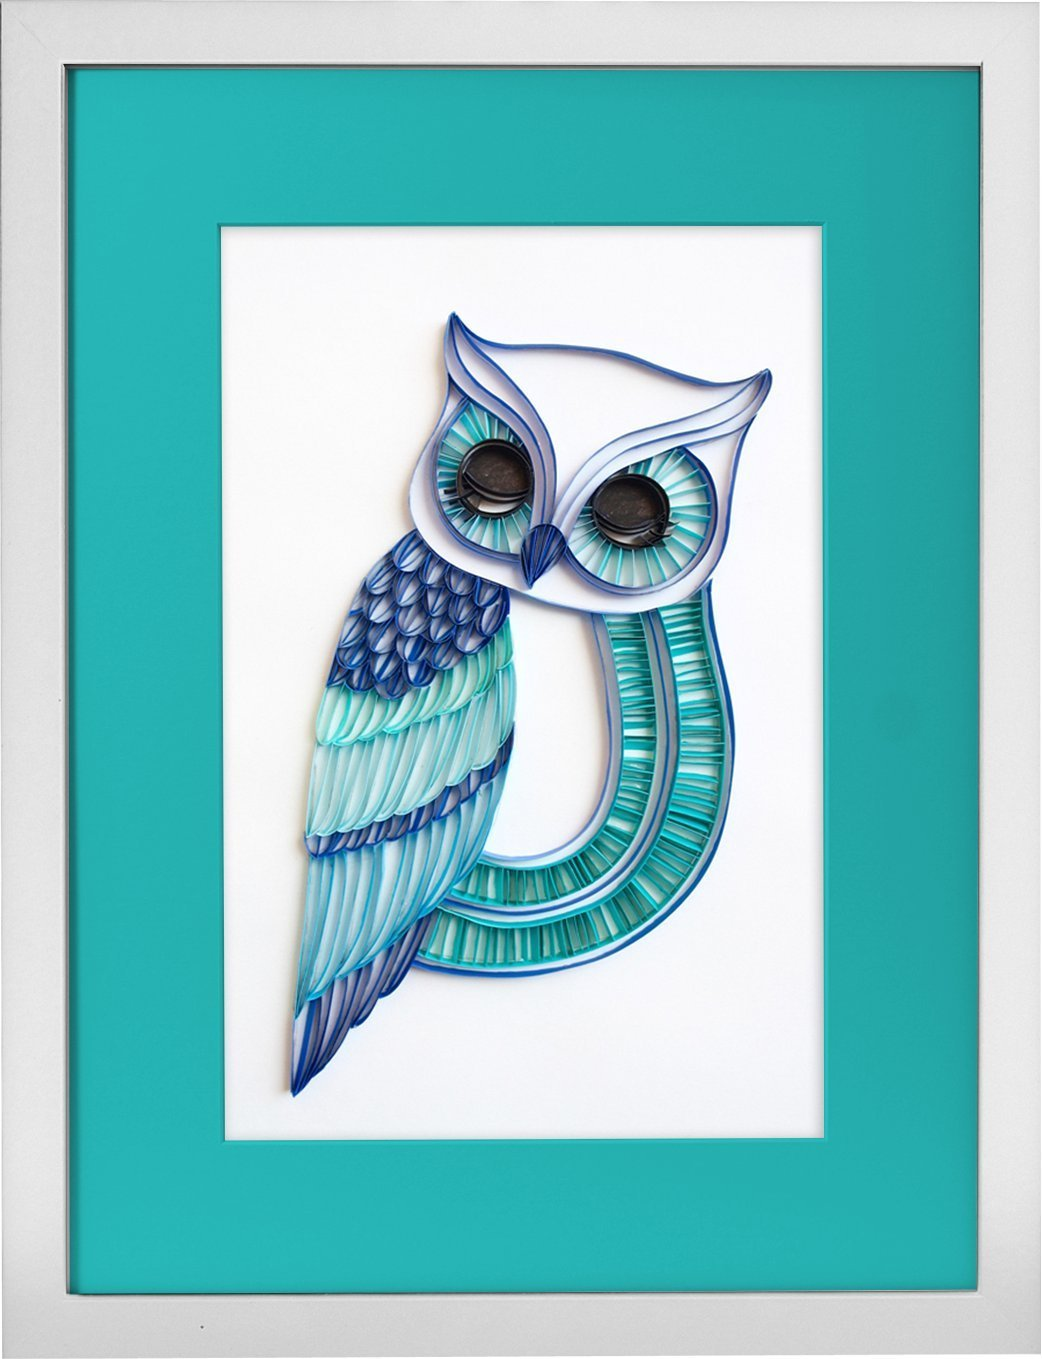 The Sleepy Owl - Modern Paper Quilled Wall Art for Home Decor (one of a kind paper quilling handcrafted piece made with love by an artist in California)